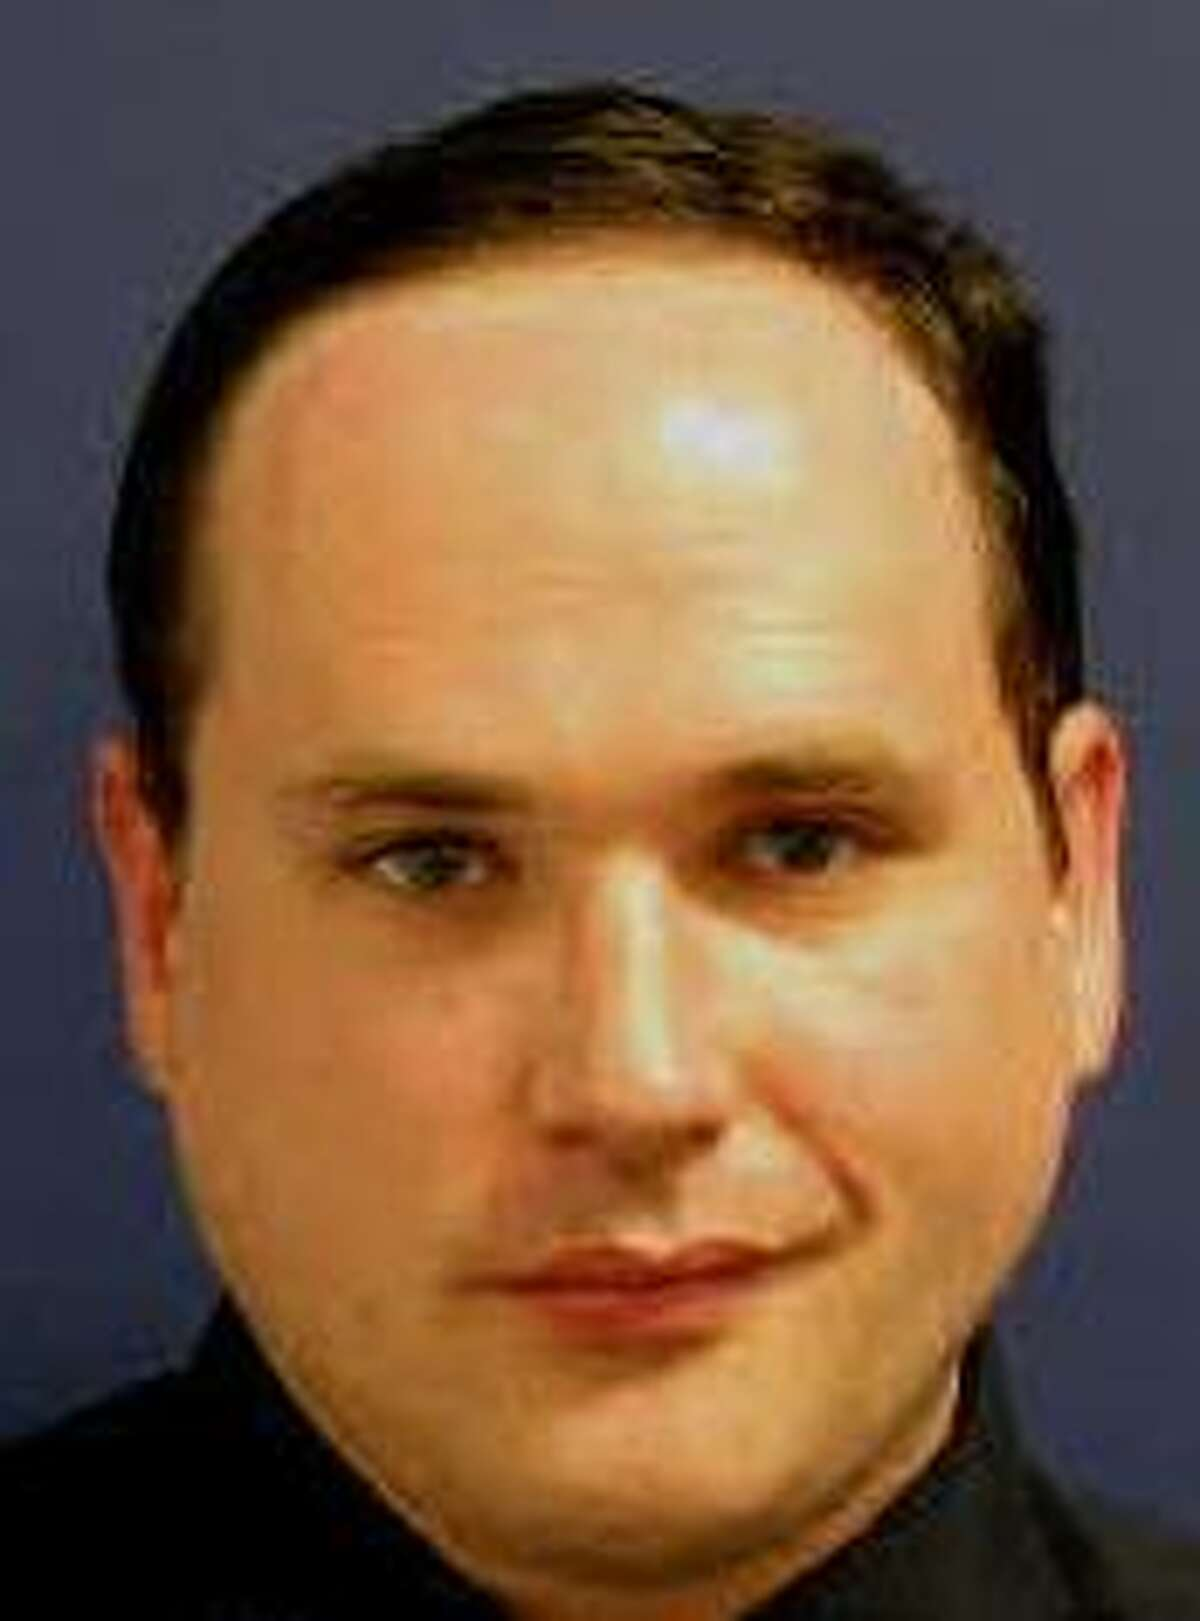 Jason Loosmore, 32, a former Houston police officer, was indicted by a grand jury in October 2017 for aggravated assault with a deadly weapon. The charge stems from an off-duty incident in 2016 in which he shot and wounded a neighbor following an argument over a dog, prosecutors said.